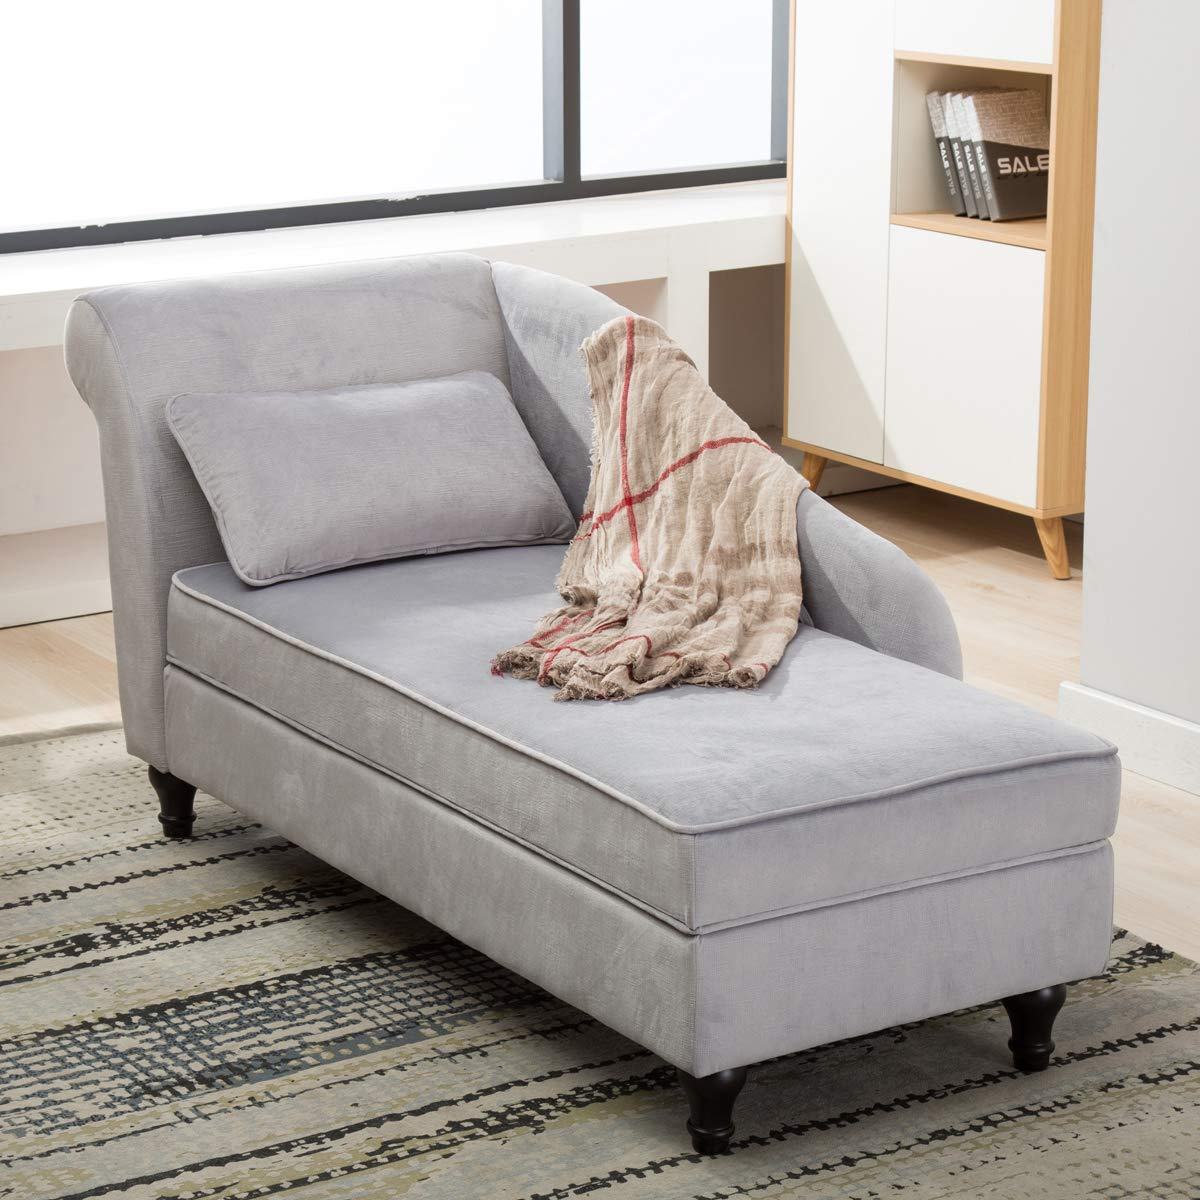 - Chaise Lounge Storage Upholstered Sofa Couch For Living Room